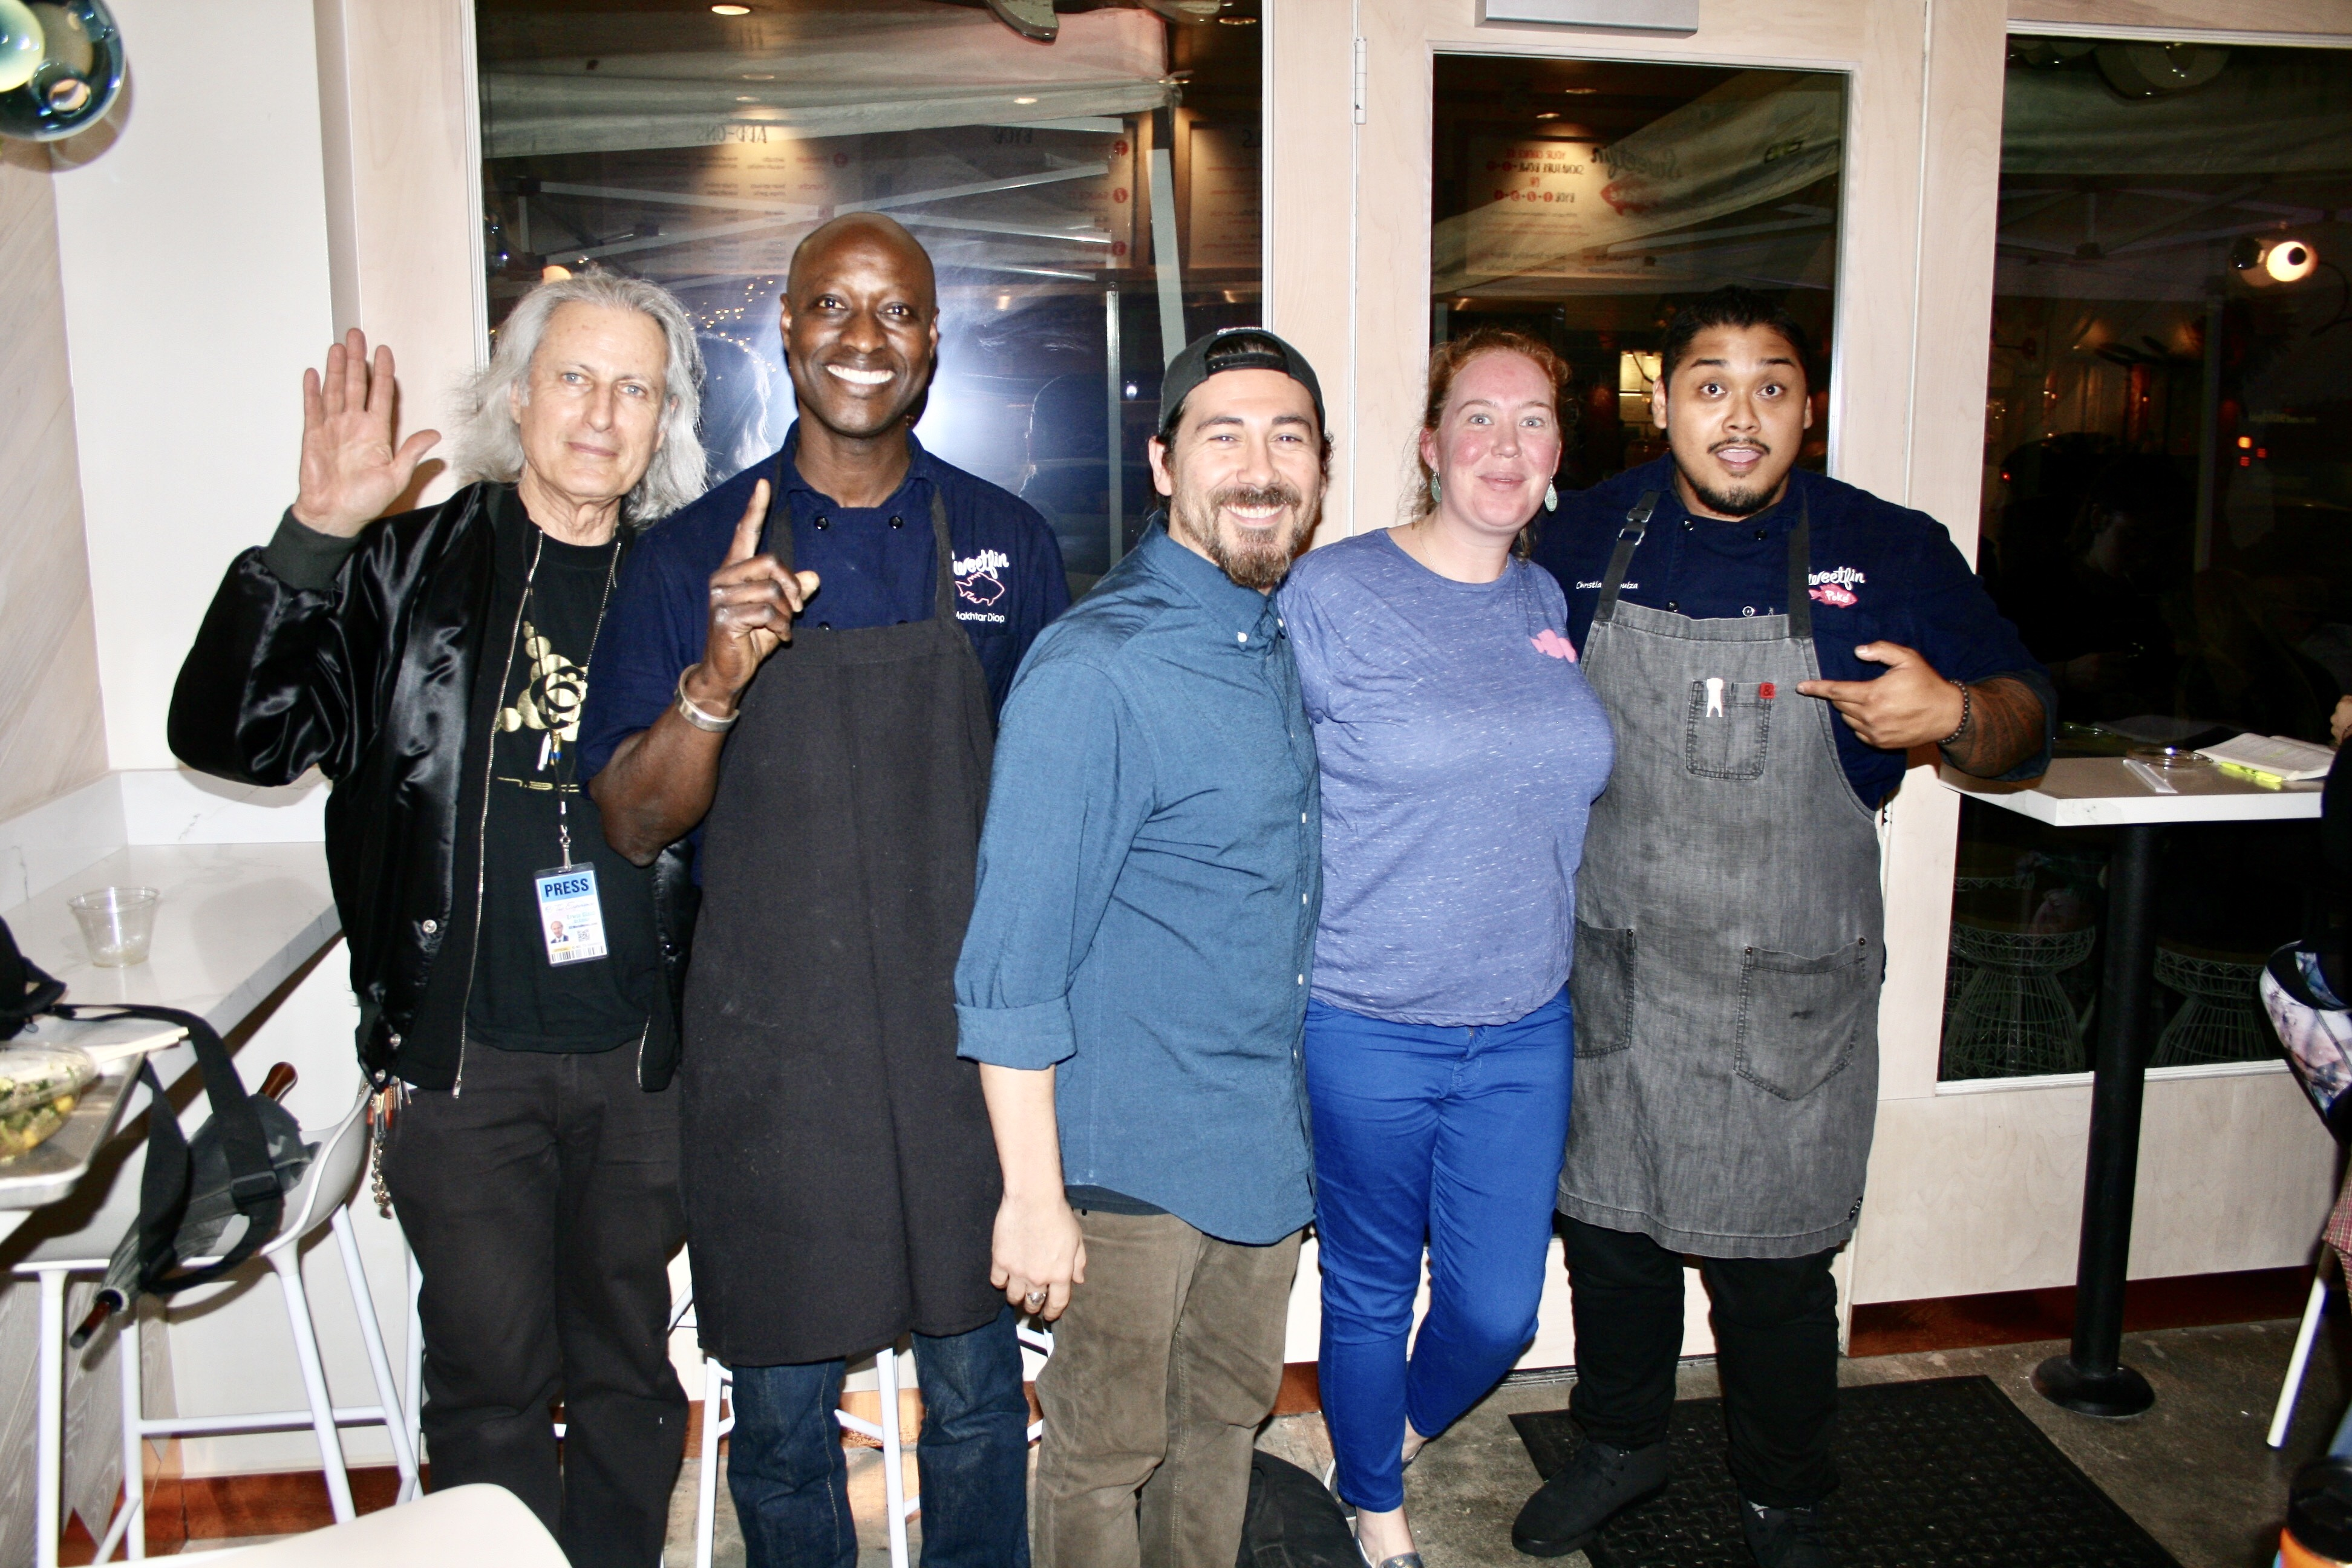 Publisher of the Experience Magazine, Erwin Glaub (left) with the Sweetfin Poké team ~ Chef Makhtar Diop (Westwood), Stephen Valdez (Westwood), Ashley Bohan (Topanga)and Christian Alquiza (Santa Monica). Photo courtesy Dustin Brown